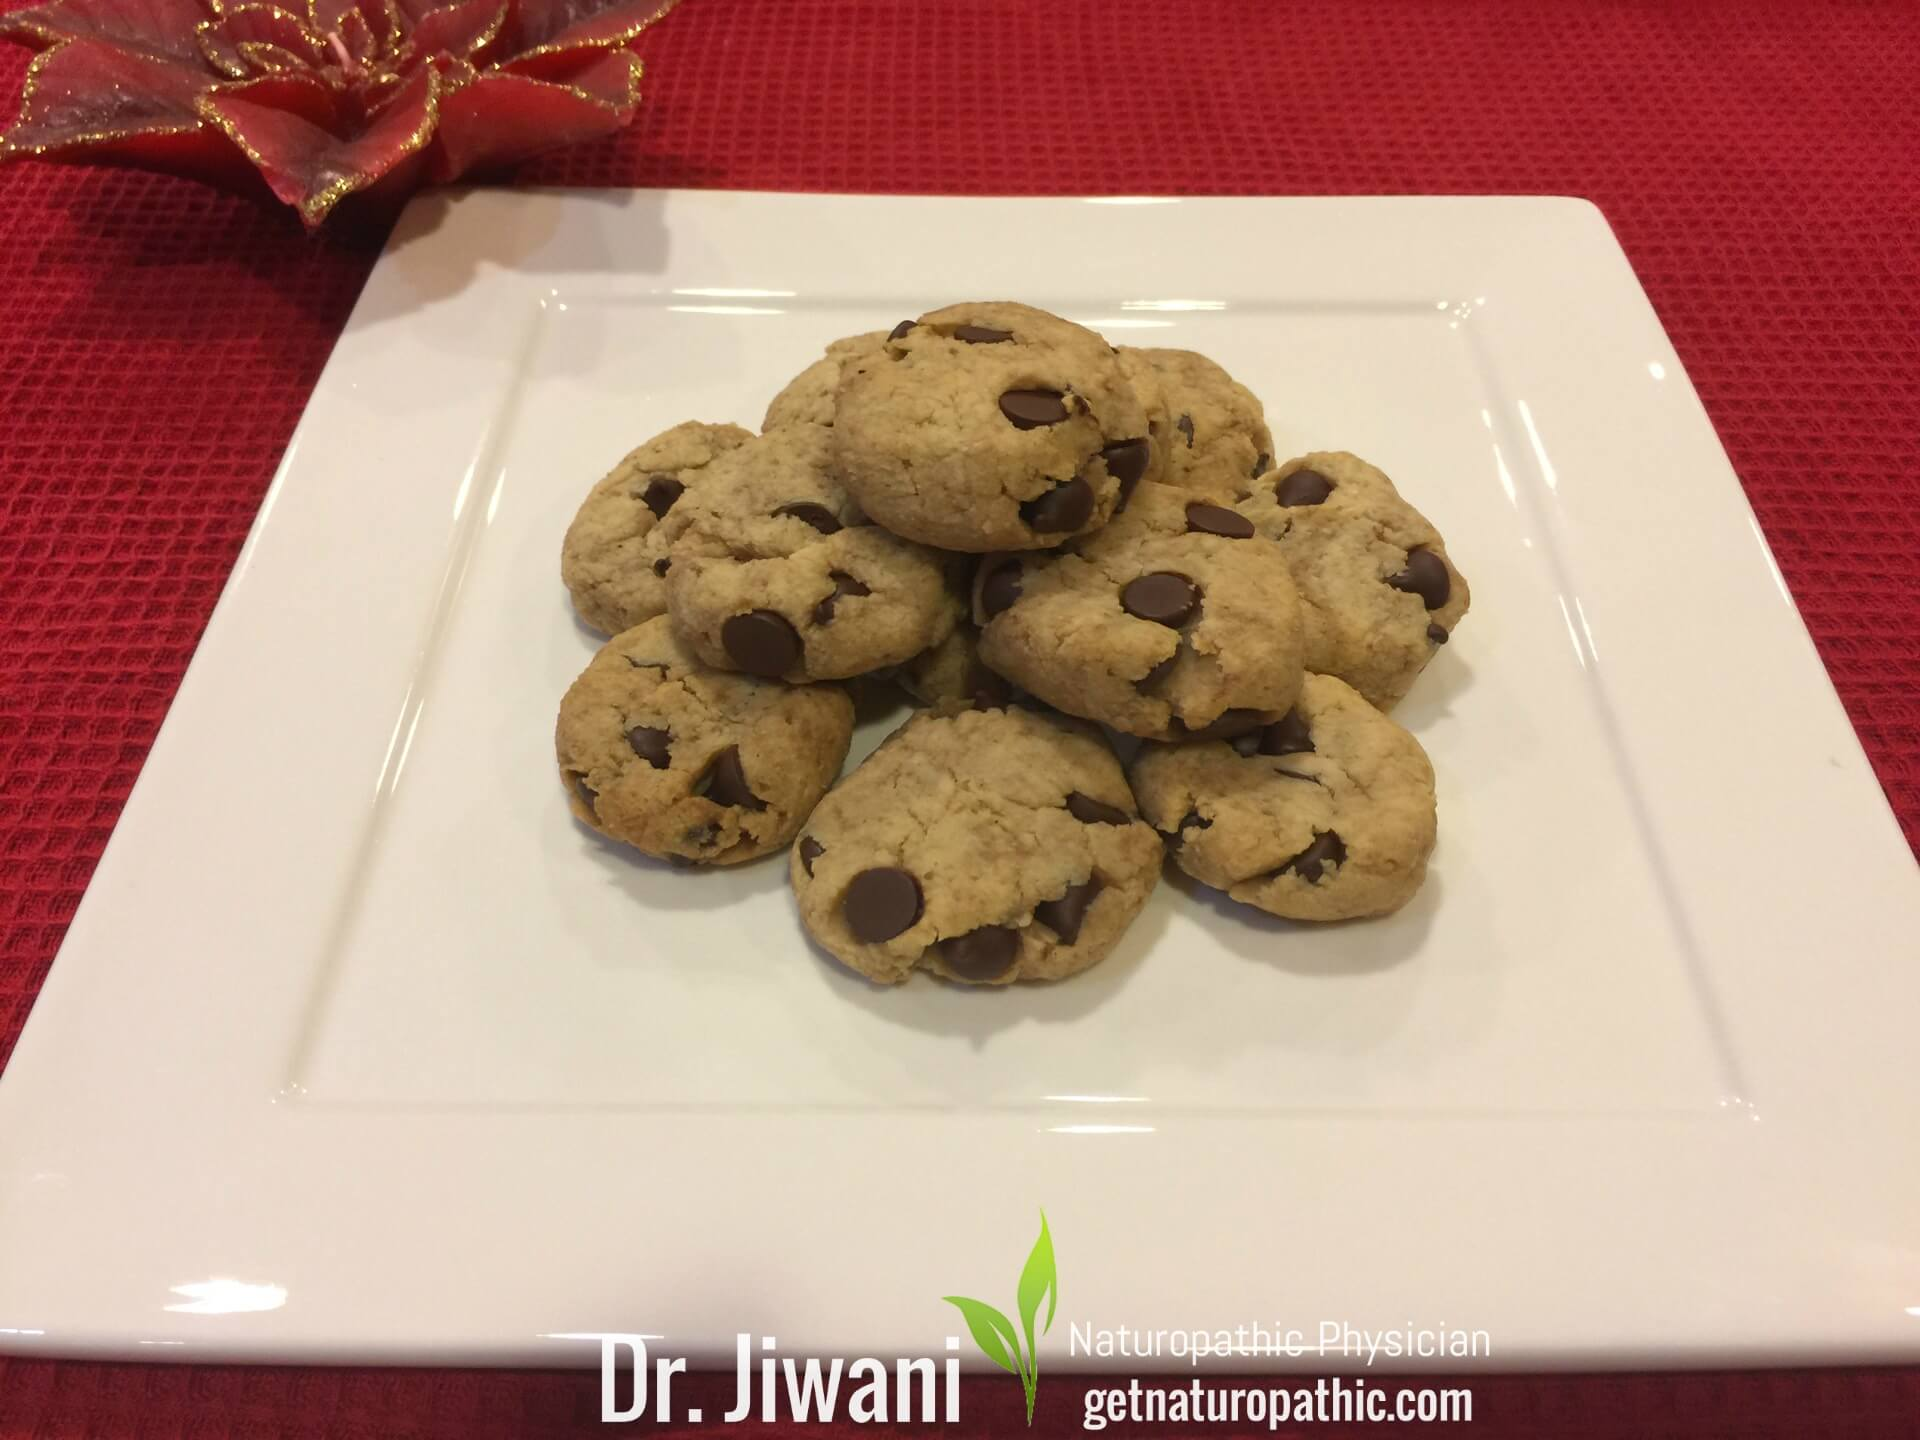 Dr. Jiwani's Guilt-Free Chocolate Chip Cookies: Low Carb, Gluten-Free, Egg-Free, Dairy-Free, Soy-Free, Corn-Free, Ideal For Vegan, Paleo, Keto, Diabetic & Candida Diets | Dr. Jiwani's Naturopathic Nuggets Blog